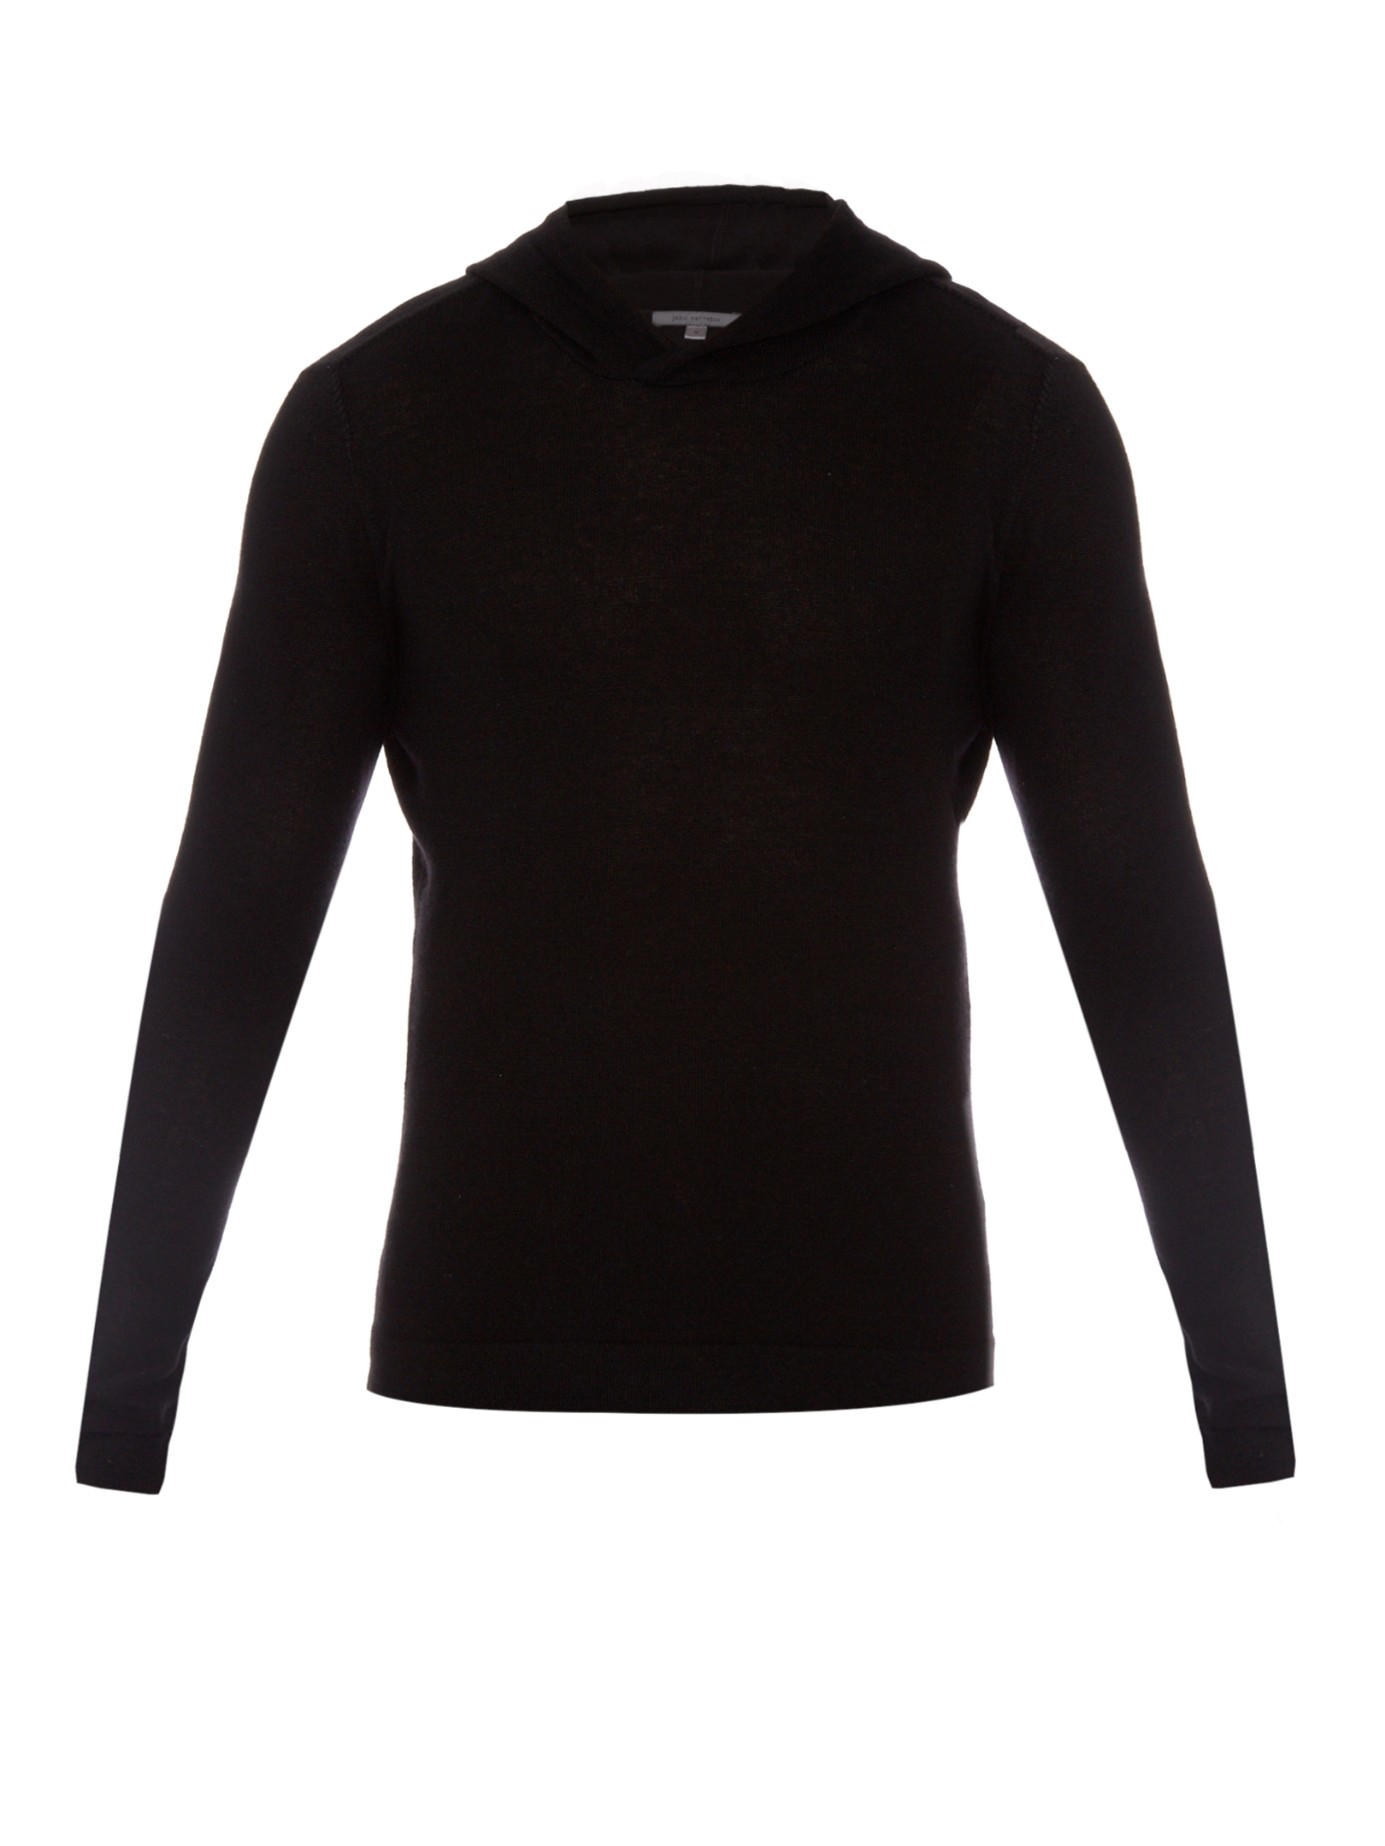 John varvatos Wool And Cashmere-blend Knit Hooded Sweater in Black ...